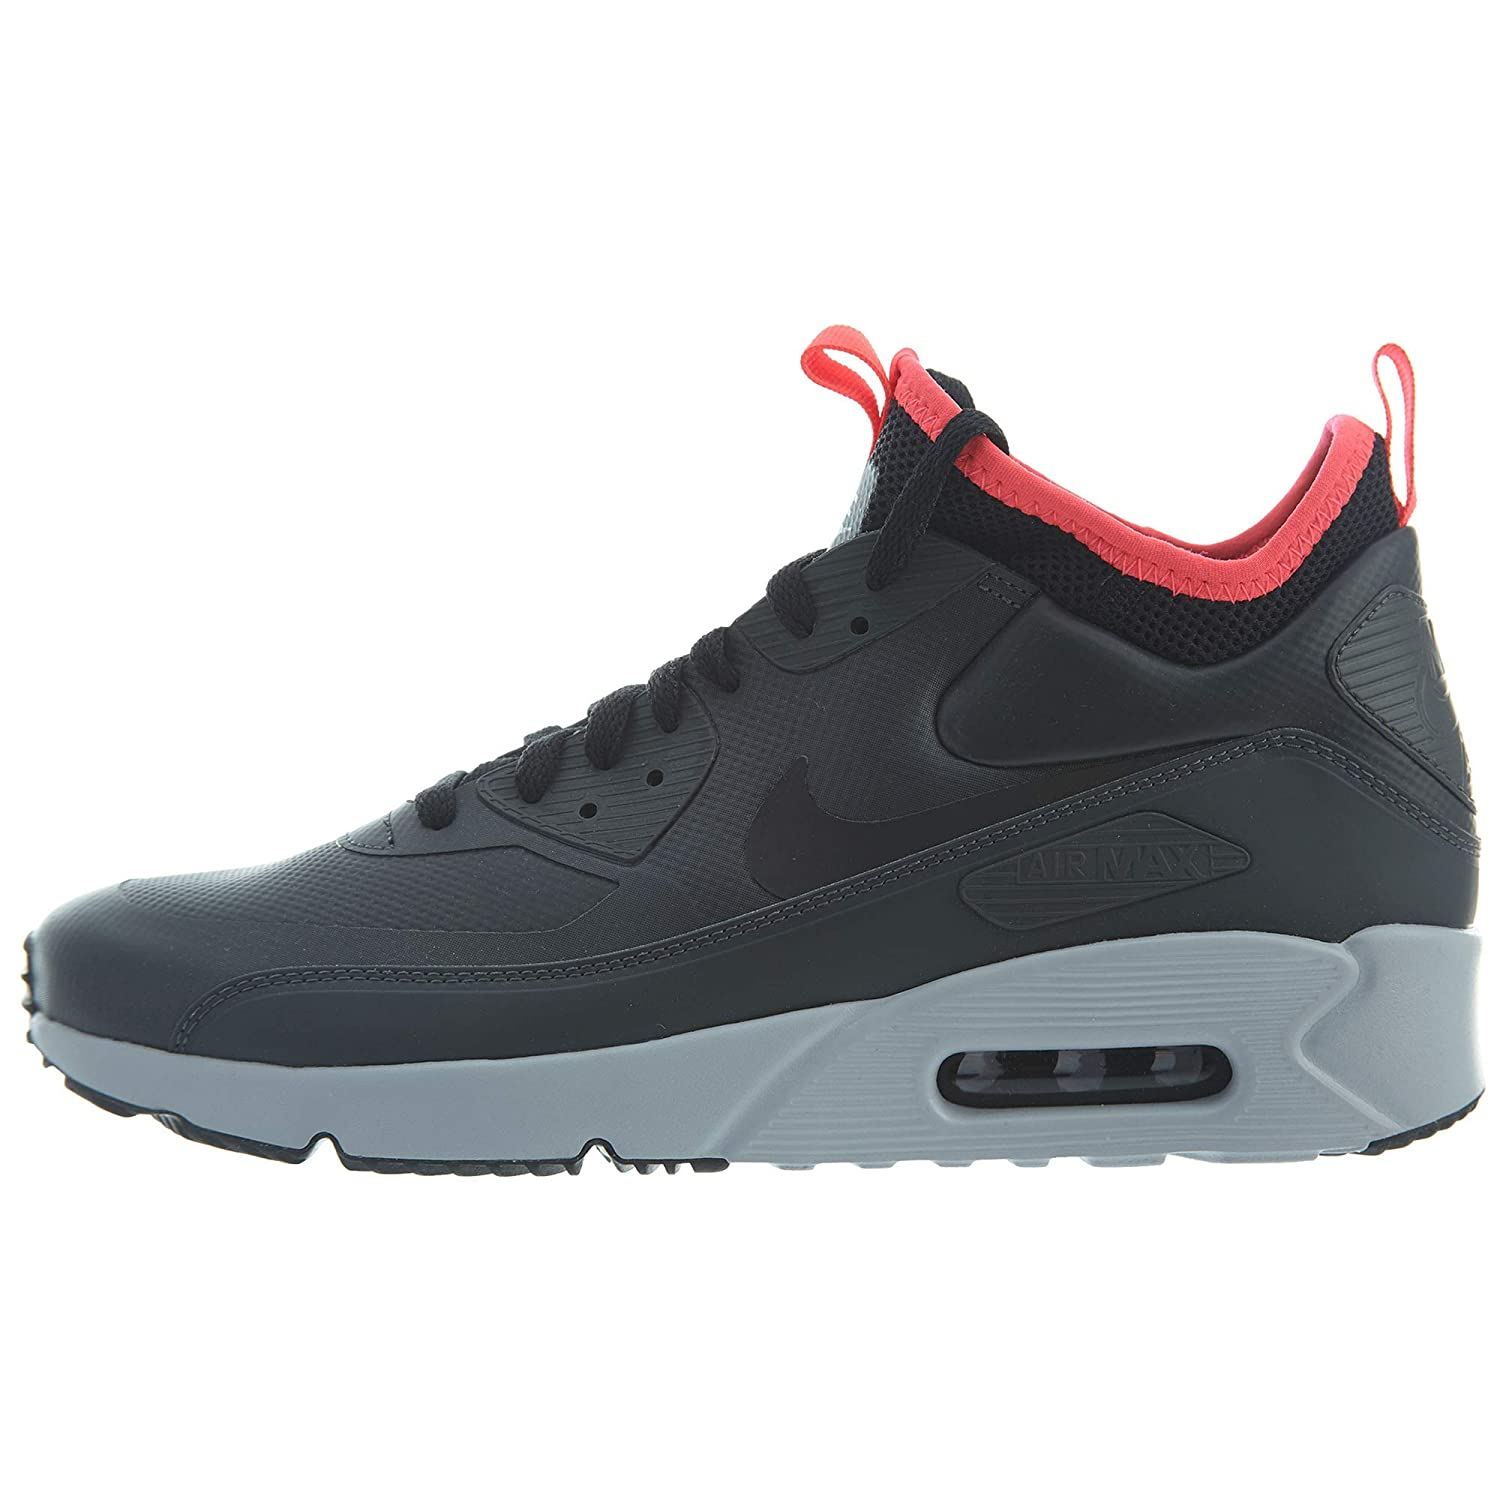 find factory outlets Nike Air Max 90 Boot Mid Suede Black